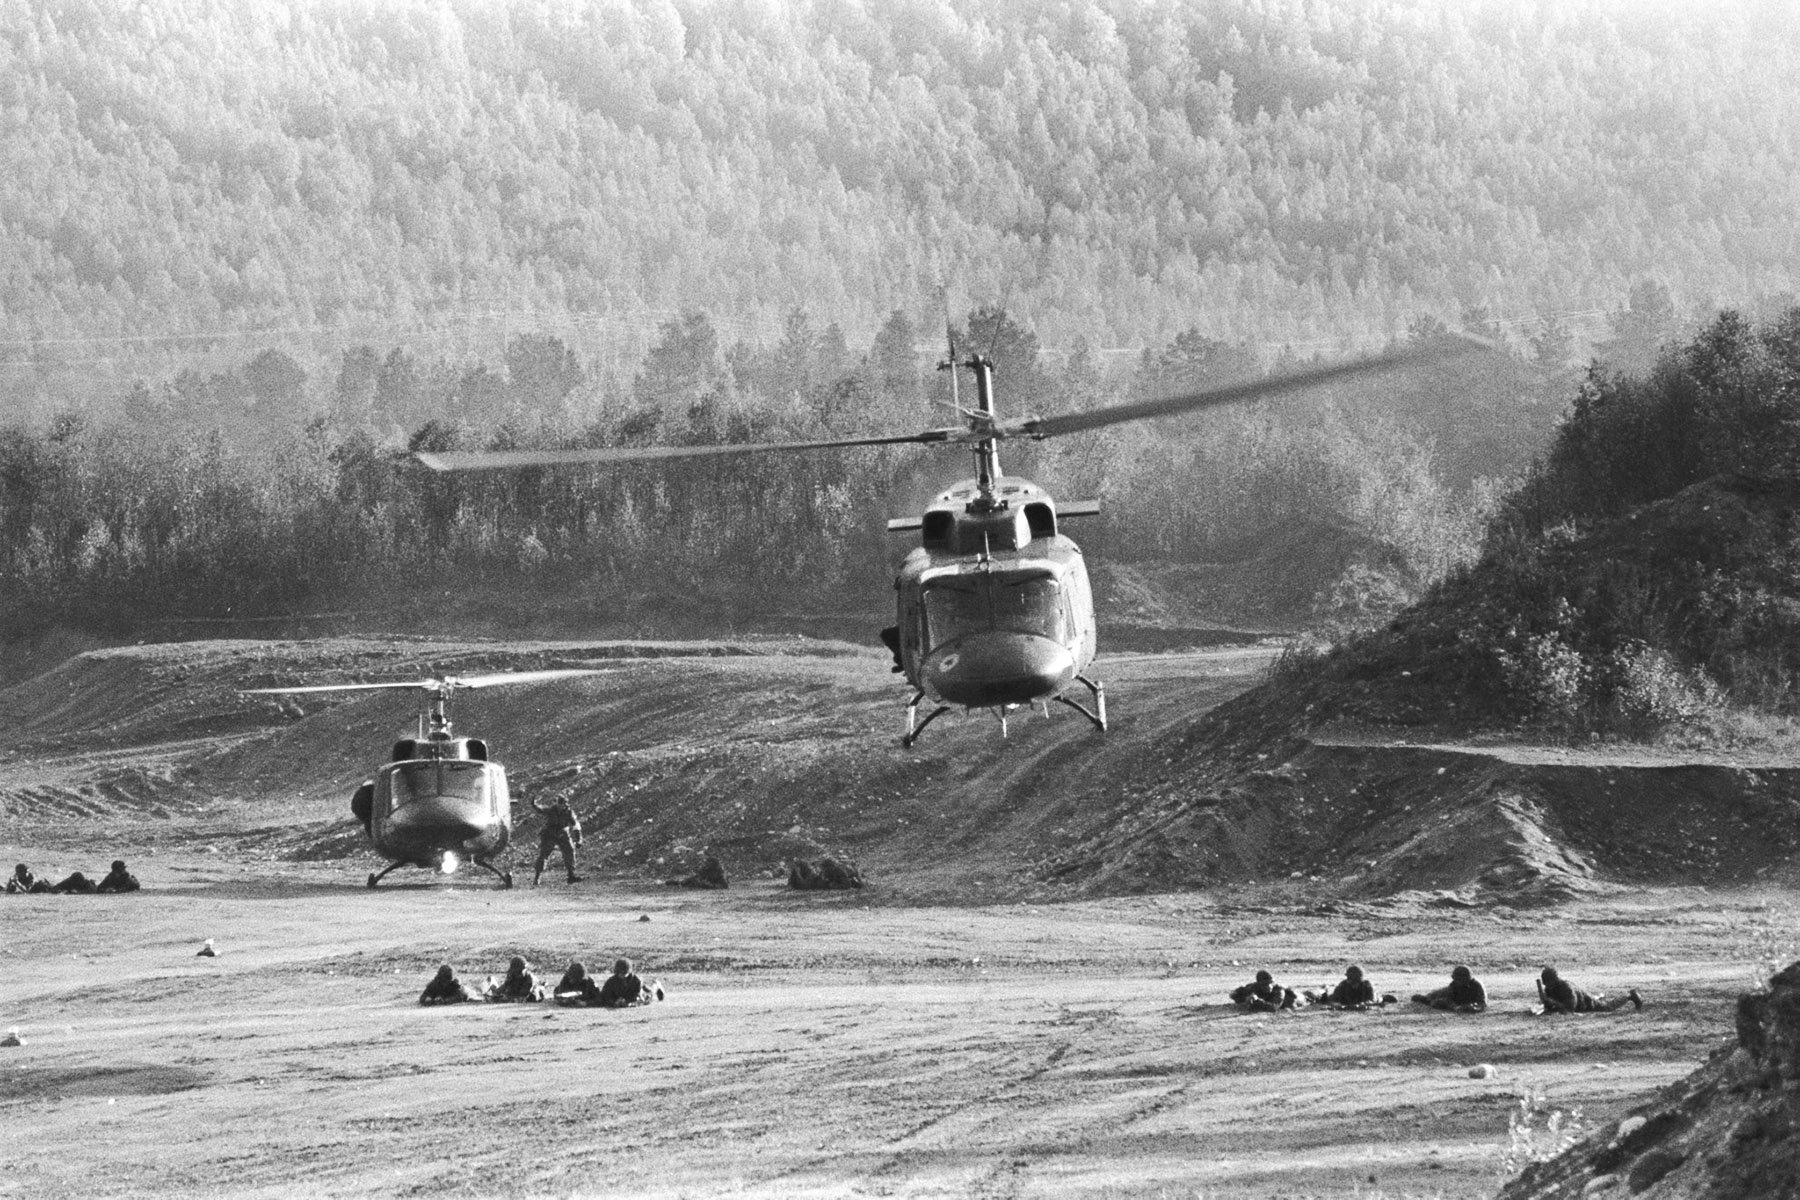 In this 1986 photograph, 430 Squadron personnel and Twin Huey helicopters exercise in Norway. PHOTO: BL86-83, DND Archives